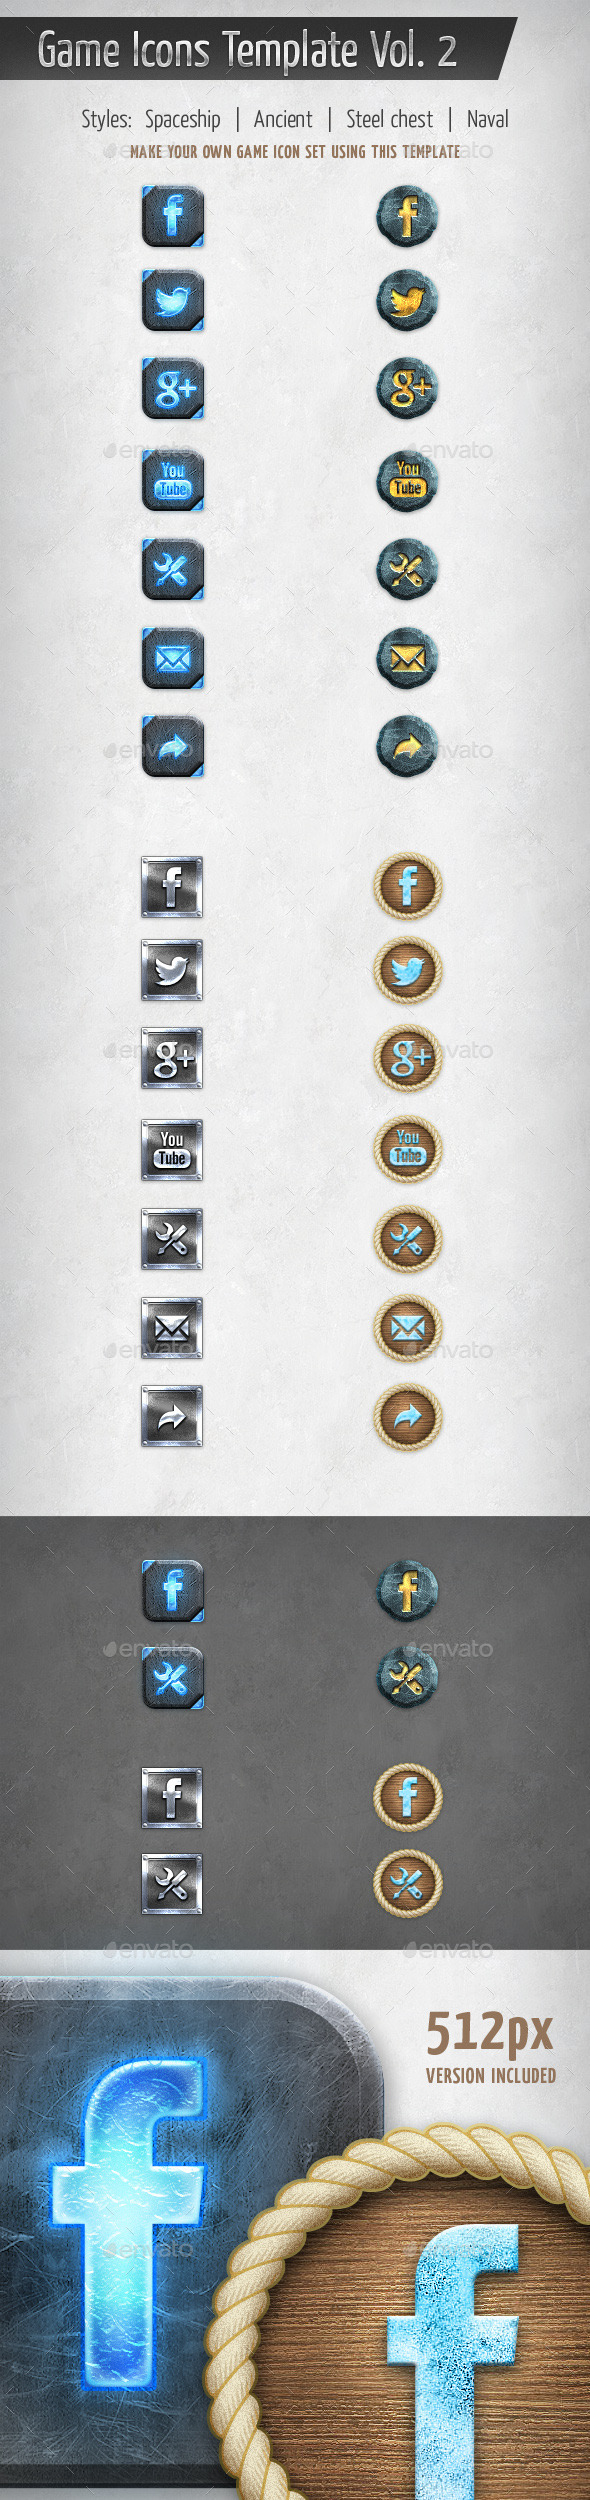 Game Icons Template Vol. 2 - Software Icons